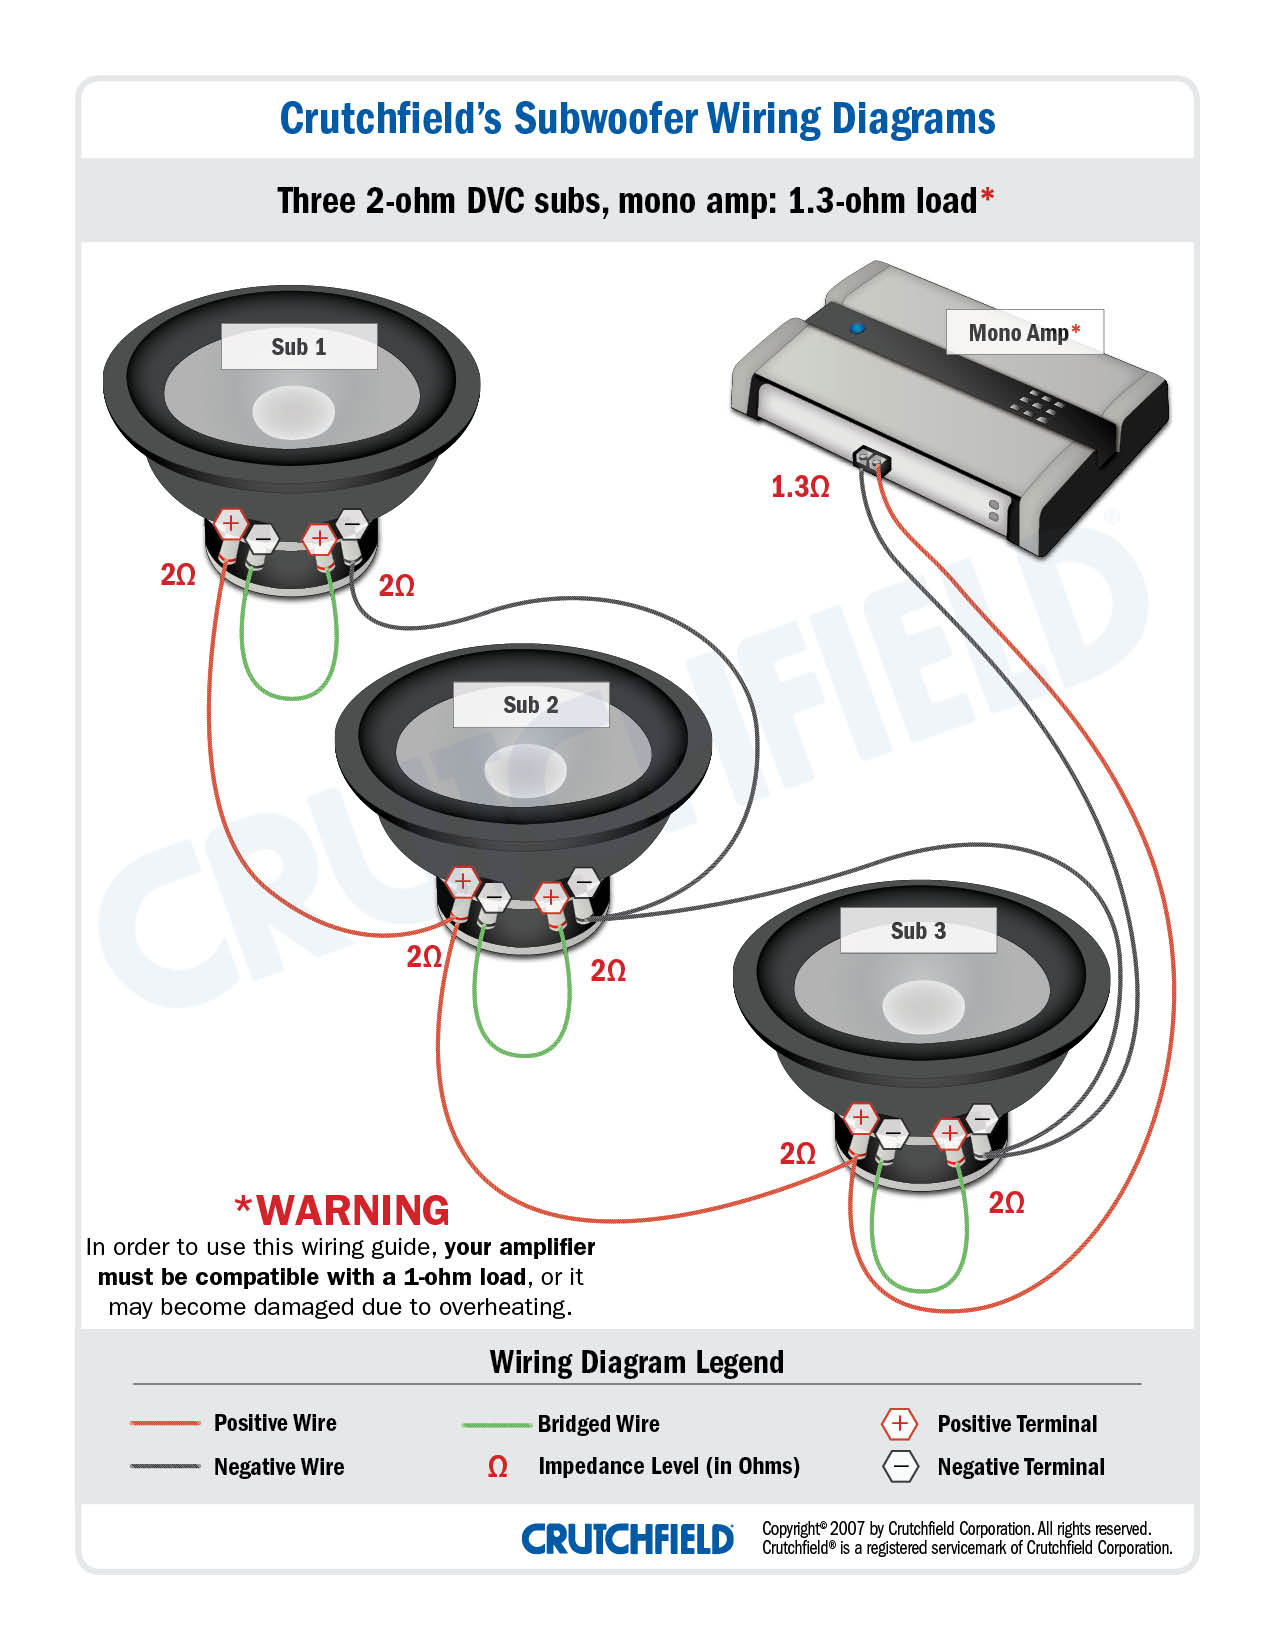 3 DVC 2 ohm mono low imp 1 ohm stable wiring diagram dual voice coil subwoofer wiring 1 ohm stable wiring diagram at mifinder.co